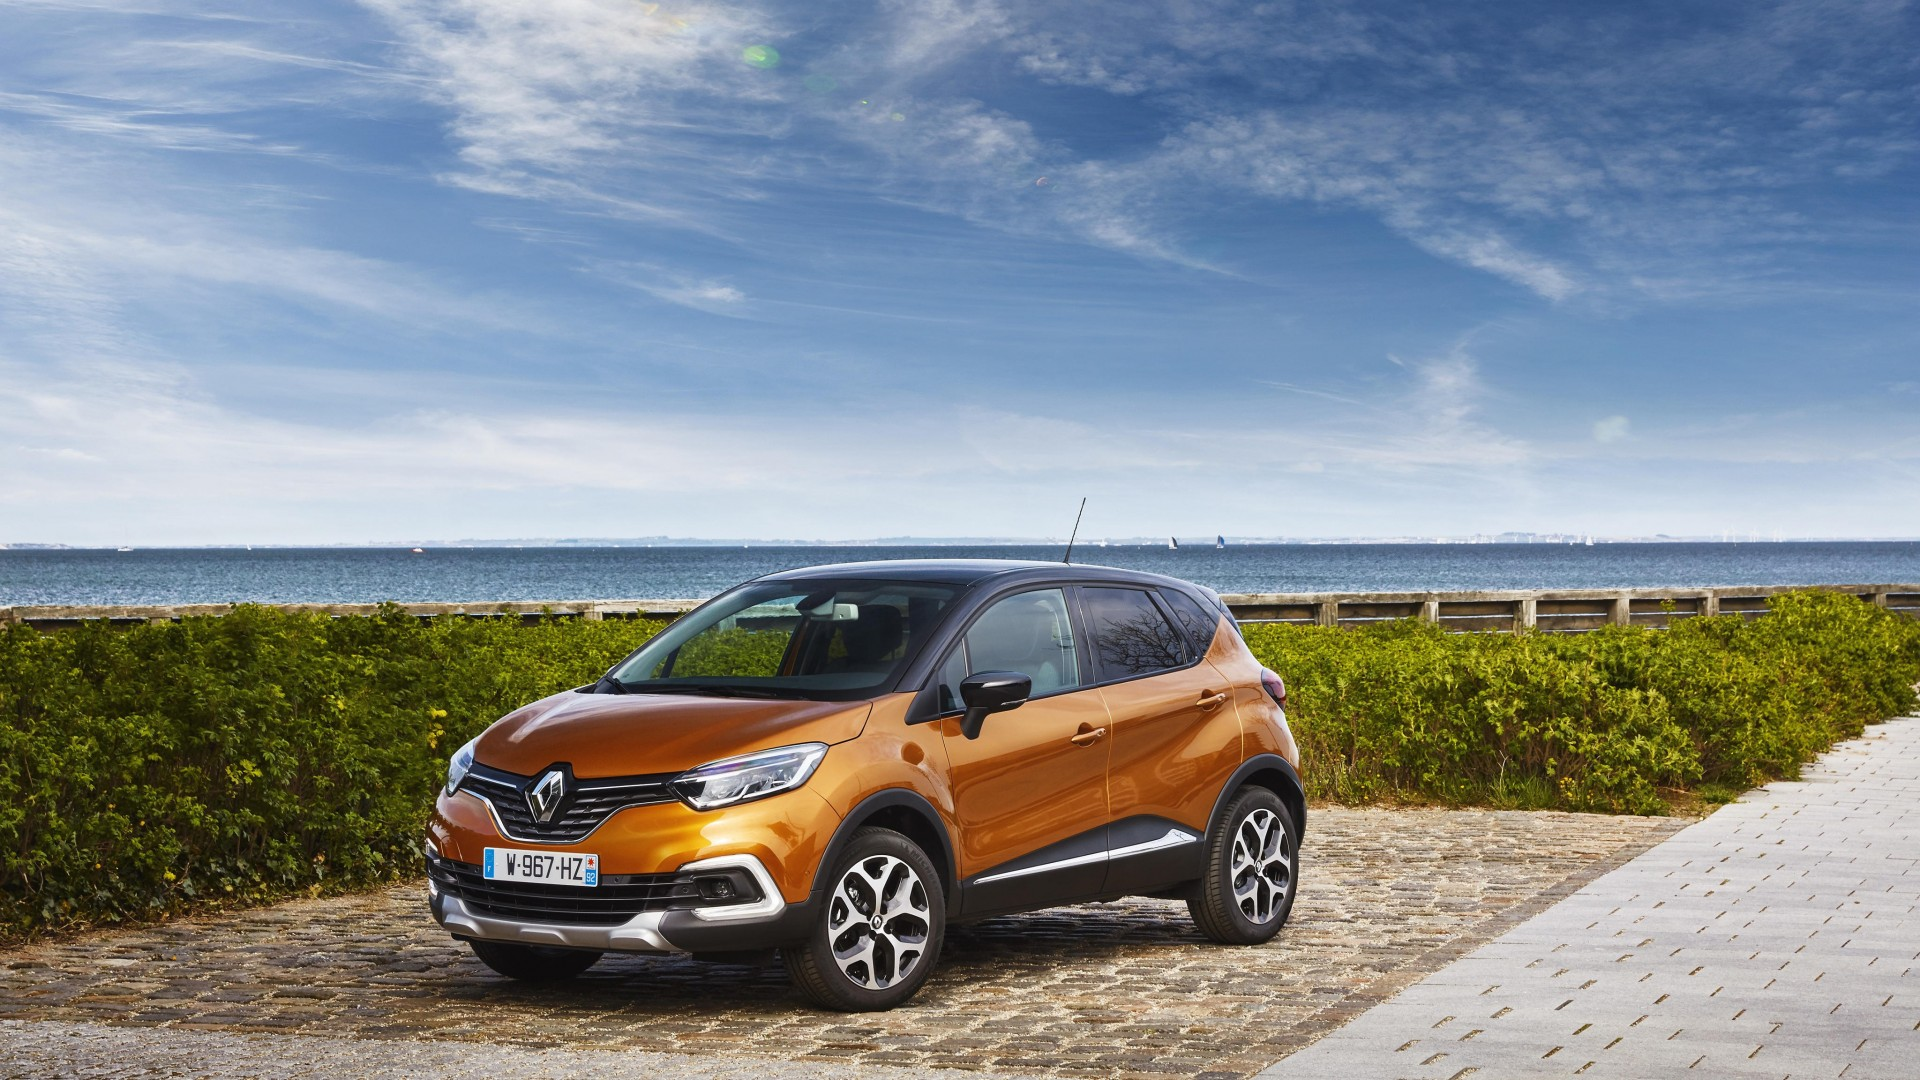 wallpaper renault captur 2018 cars 4k cars bikes 17779. Black Bedroom Furniture Sets. Home Design Ideas